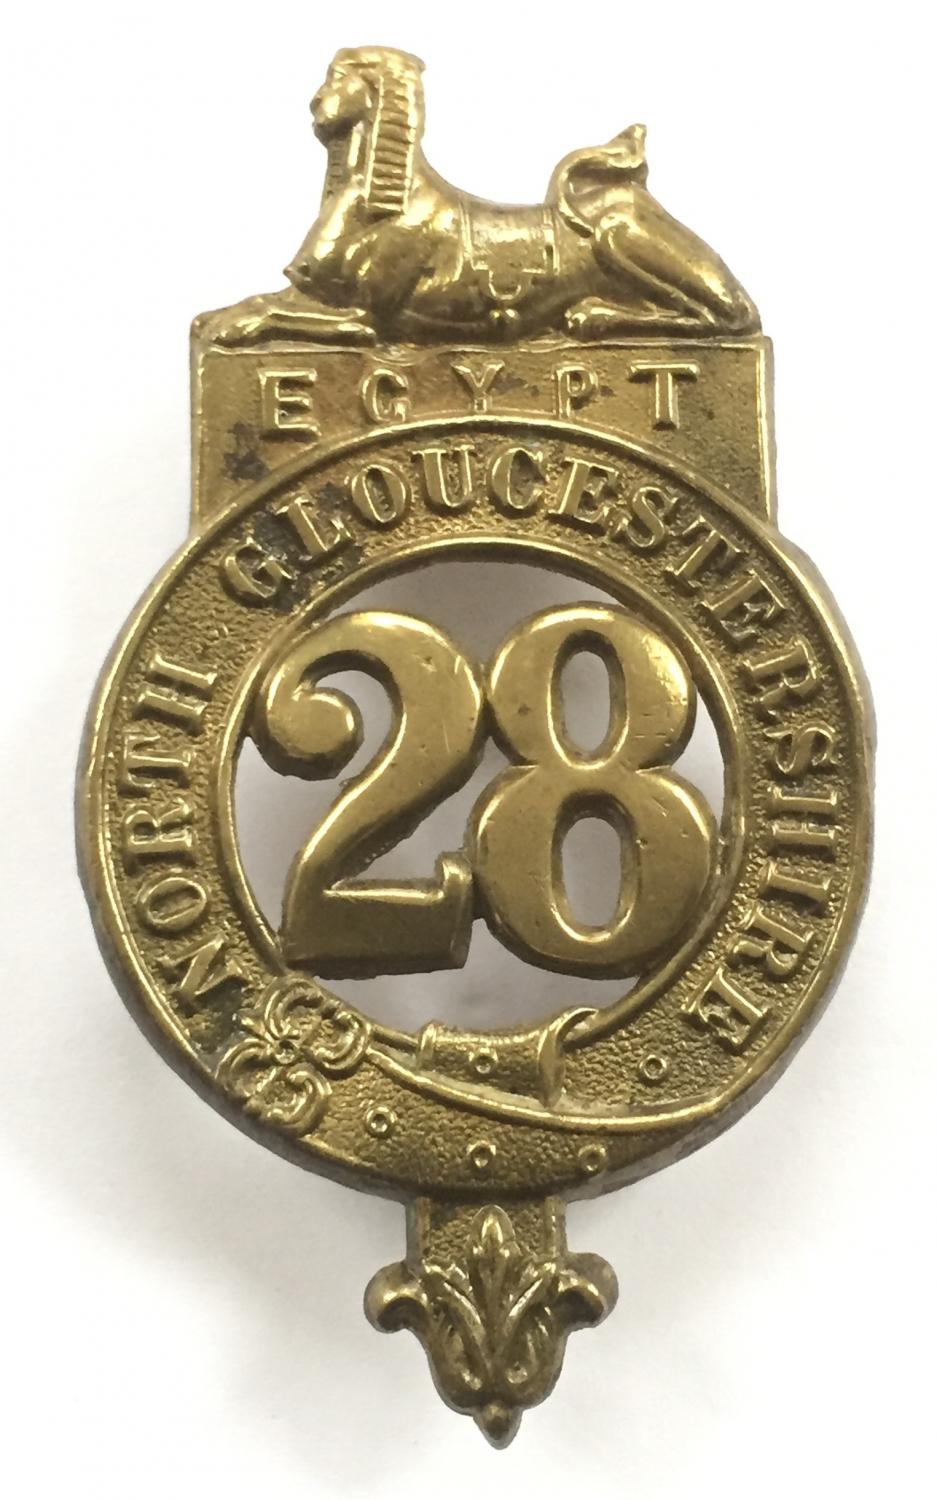 28th Foot pte 1881 glengarry badge.